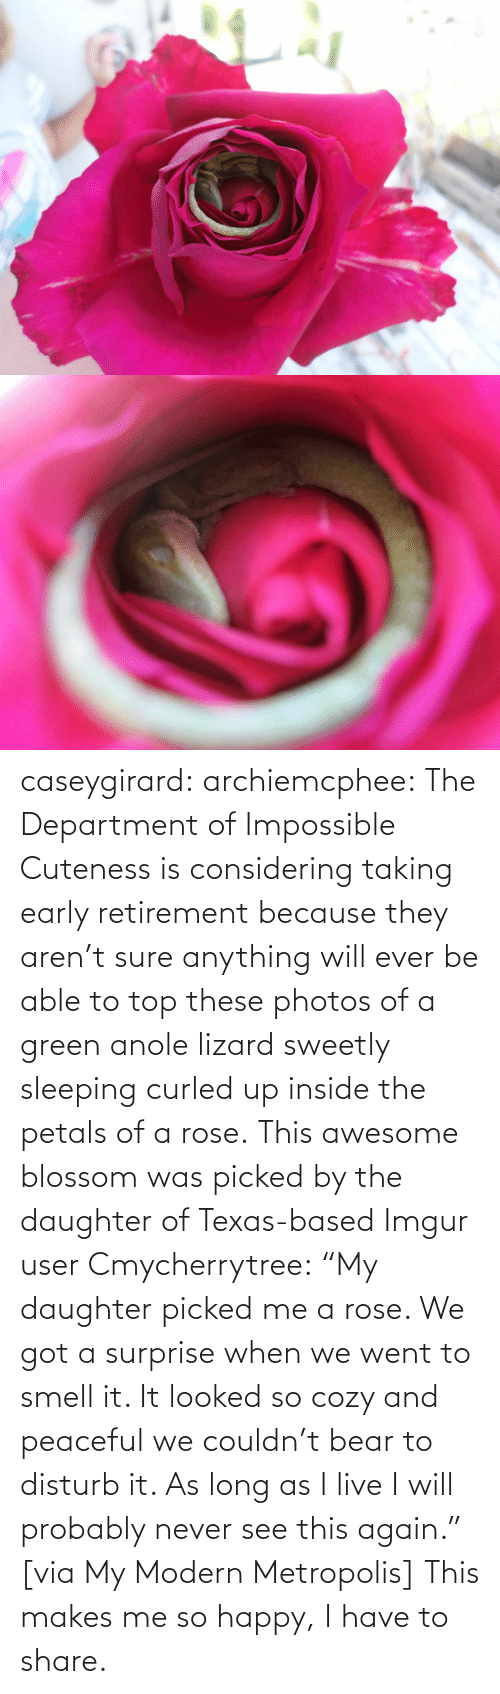 "Imgur: caseygirard:  archiemcphee:   The Department of Impossible Cuteness is considering taking early retirement because they aren't sure anything will ever be able to top these photos of a green anole lizard sweetly sleeping curled up inside the petals of a rose. This awesome blossom was picked by the daughter of Texas-based Imgur user Cmycherrytree: ""My daughter picked me a rose. We got a surprise when we went to smell it. It looked so cozy and peaceful we couldn't bear to disturb it. As long as I live I will probably never see this again."" [via My Modern Metropolis]   This makes me so happy, I have to share."